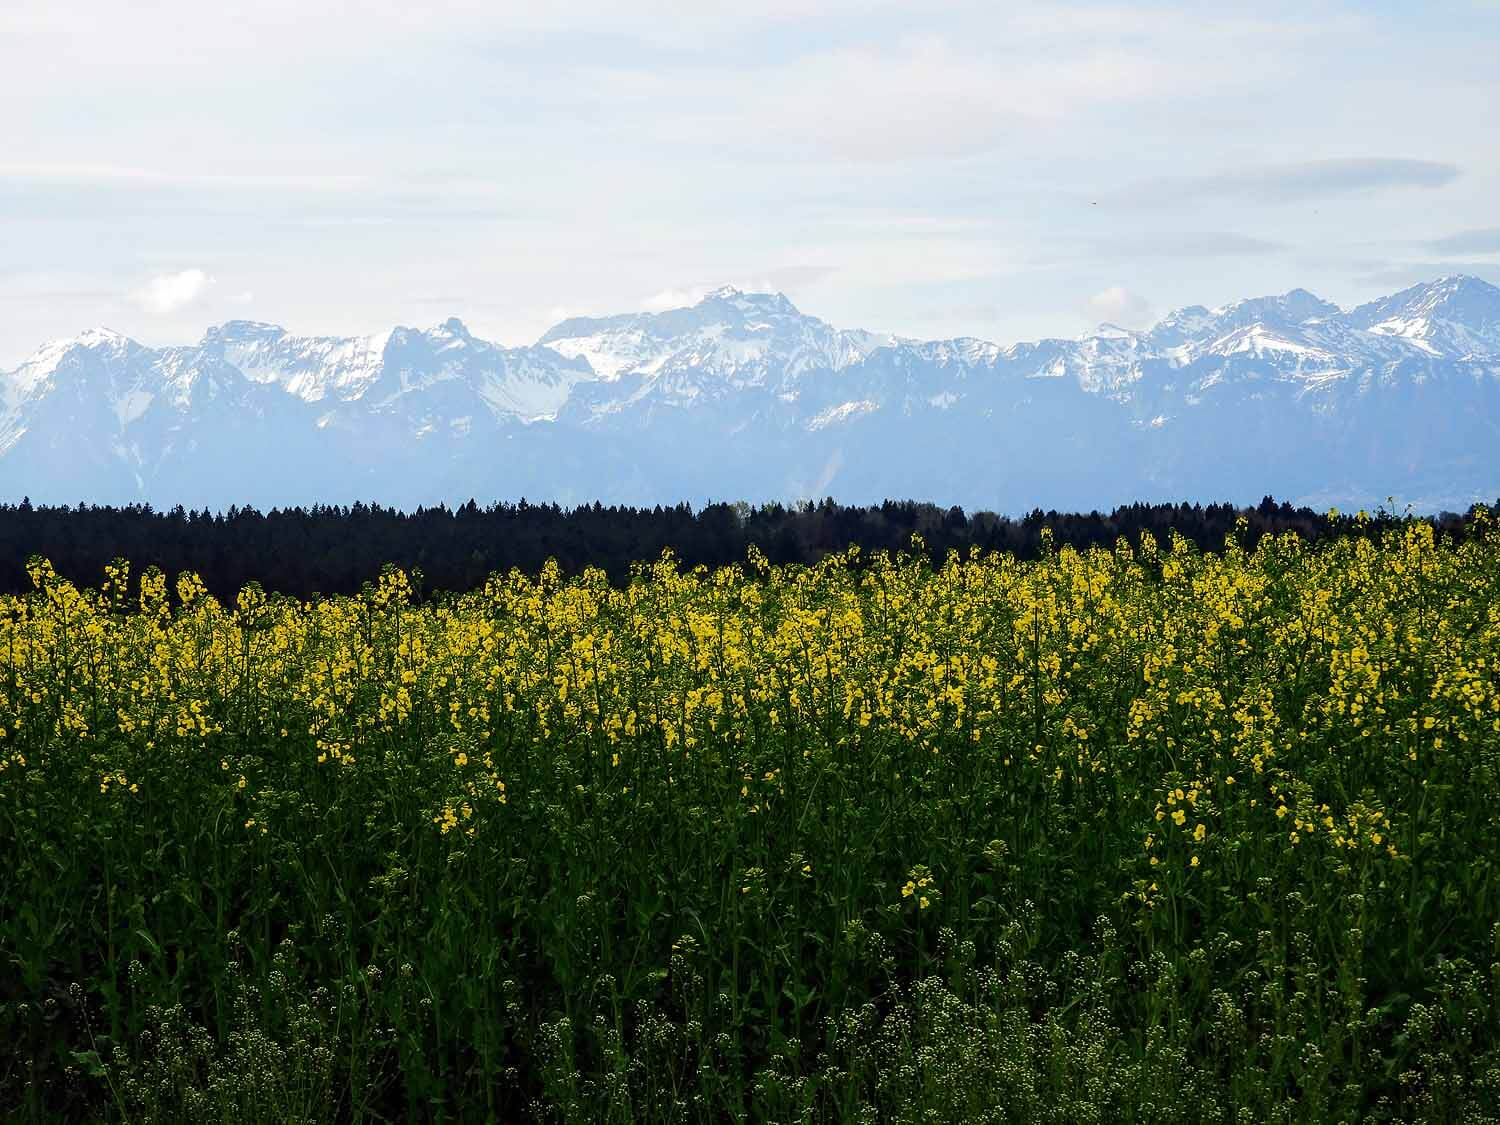 switzerland-montruex-rapseed-flowers-field.jpg